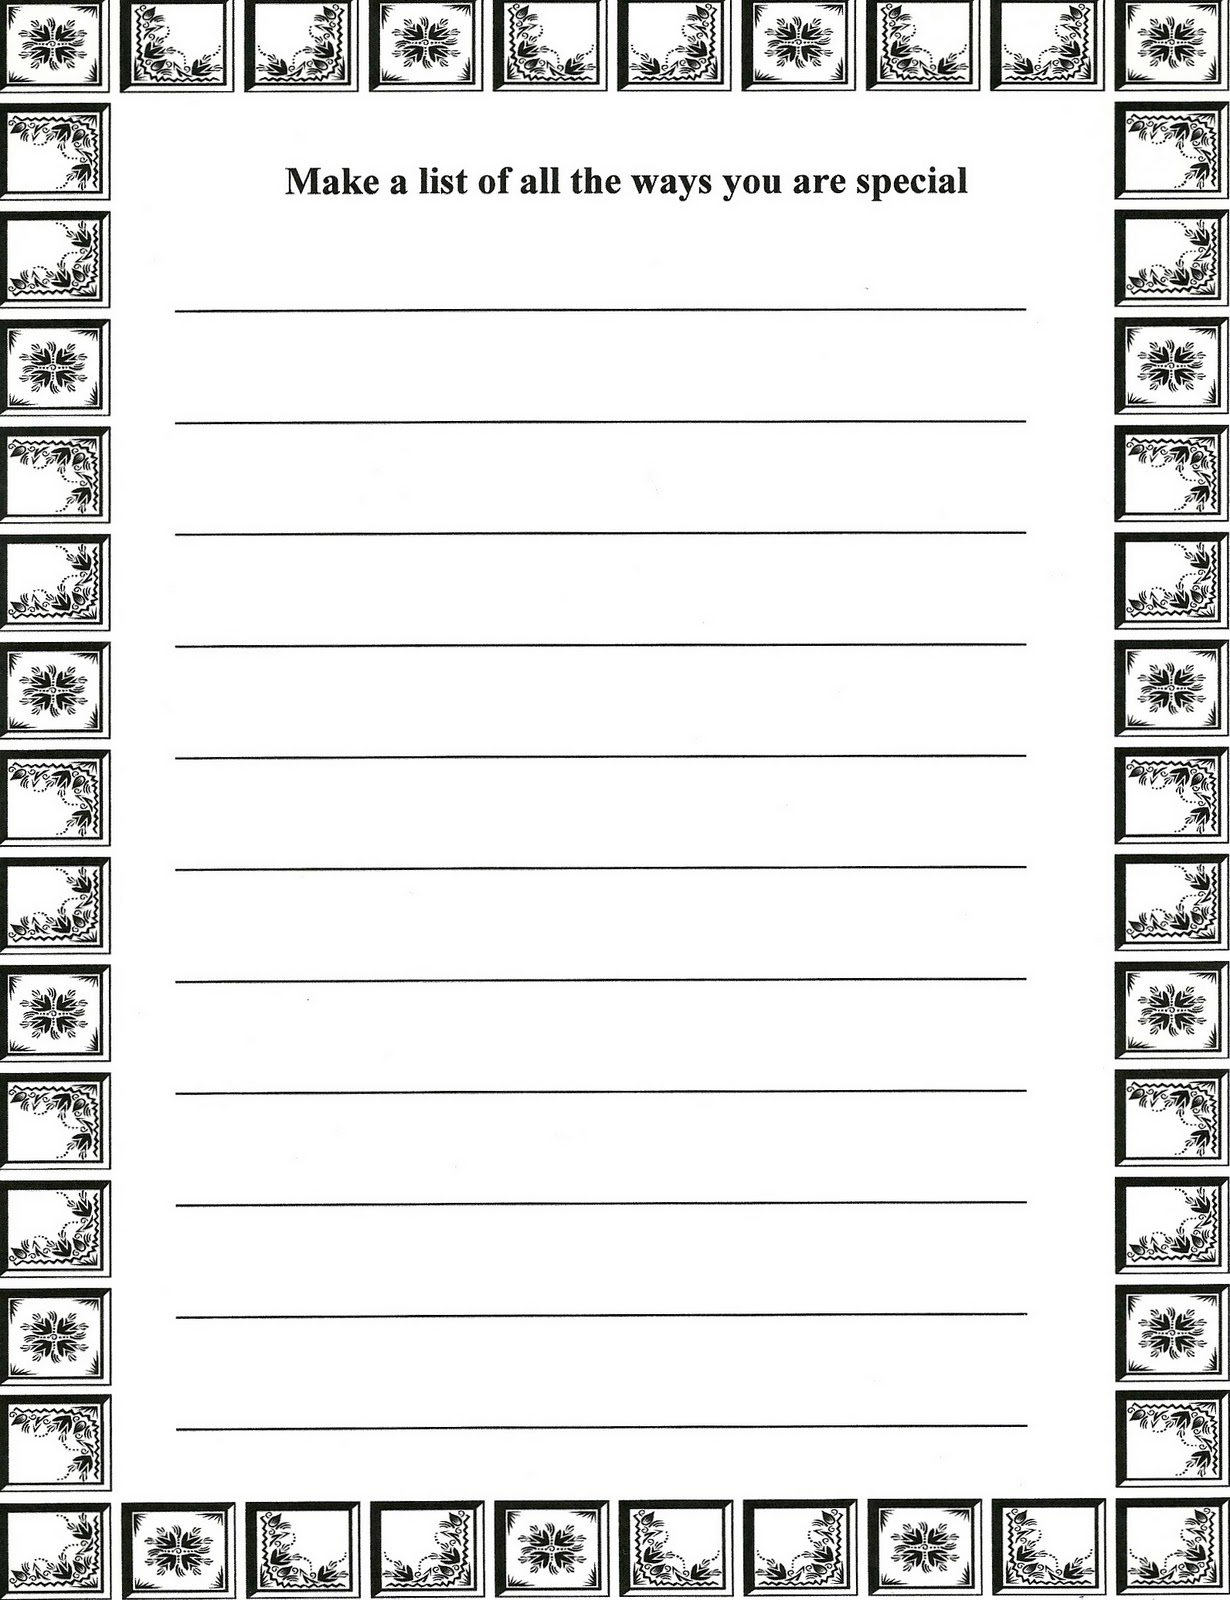 how to write a character letter bullying worksheets for preschoolers related pictures 1308